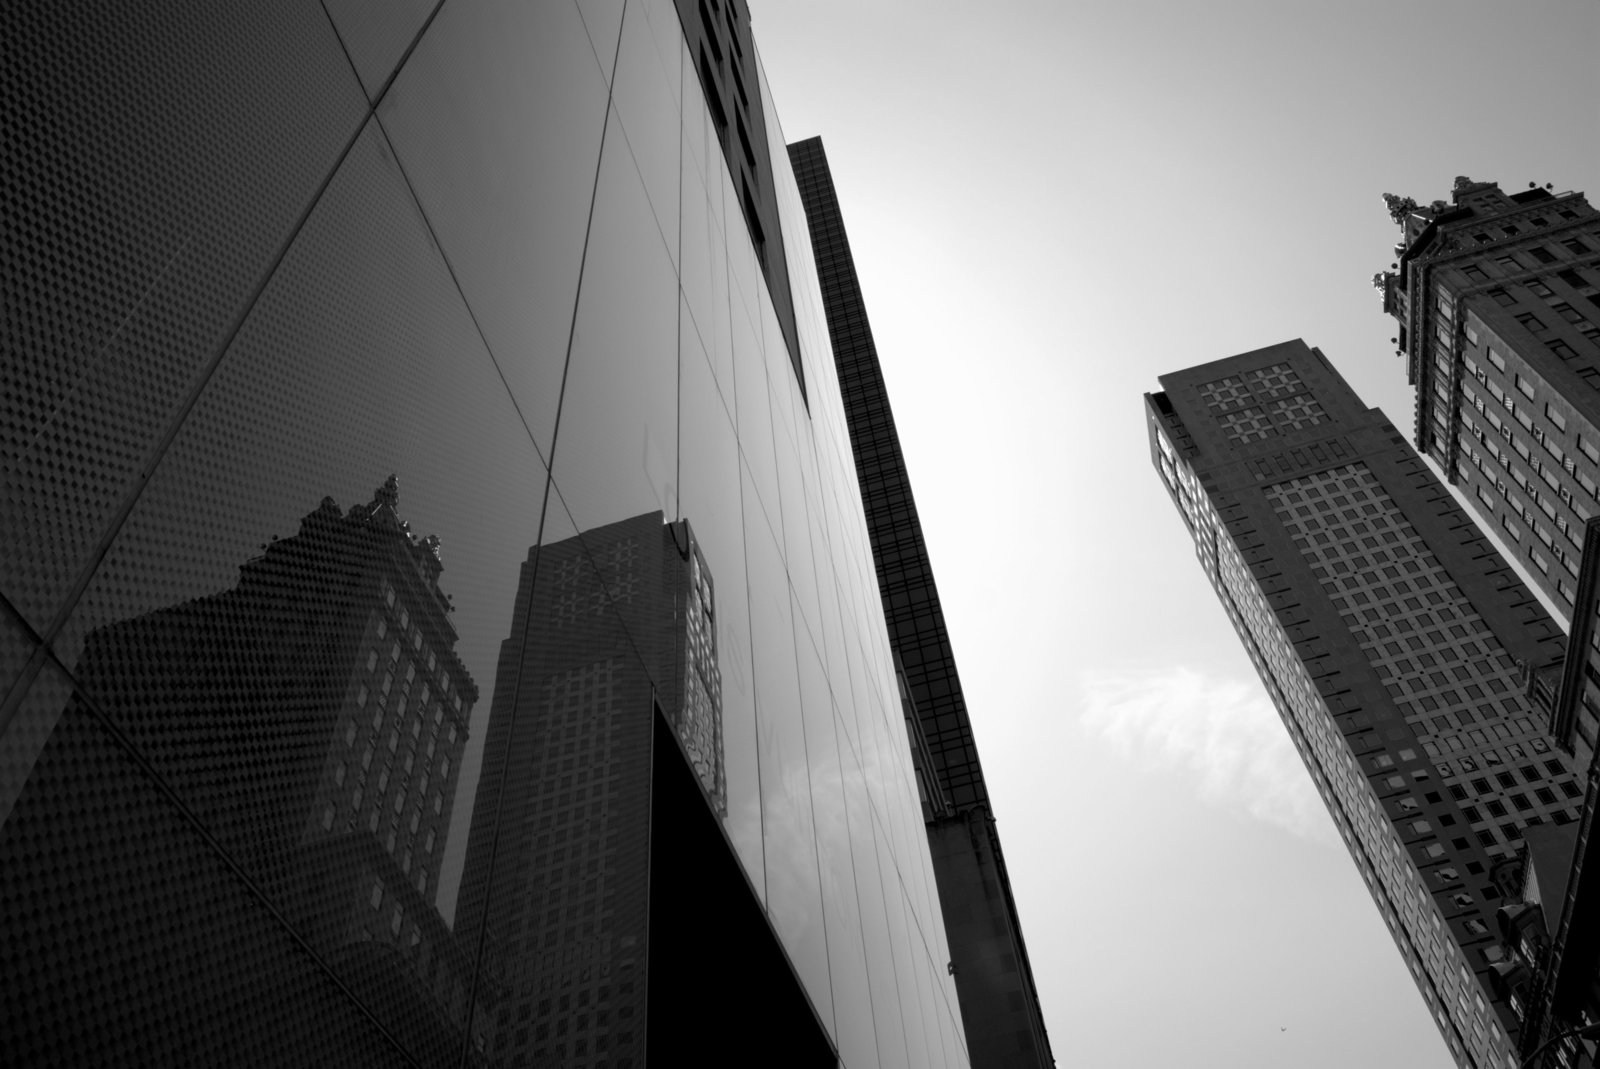 architecture-black-and-white-buildings-264594